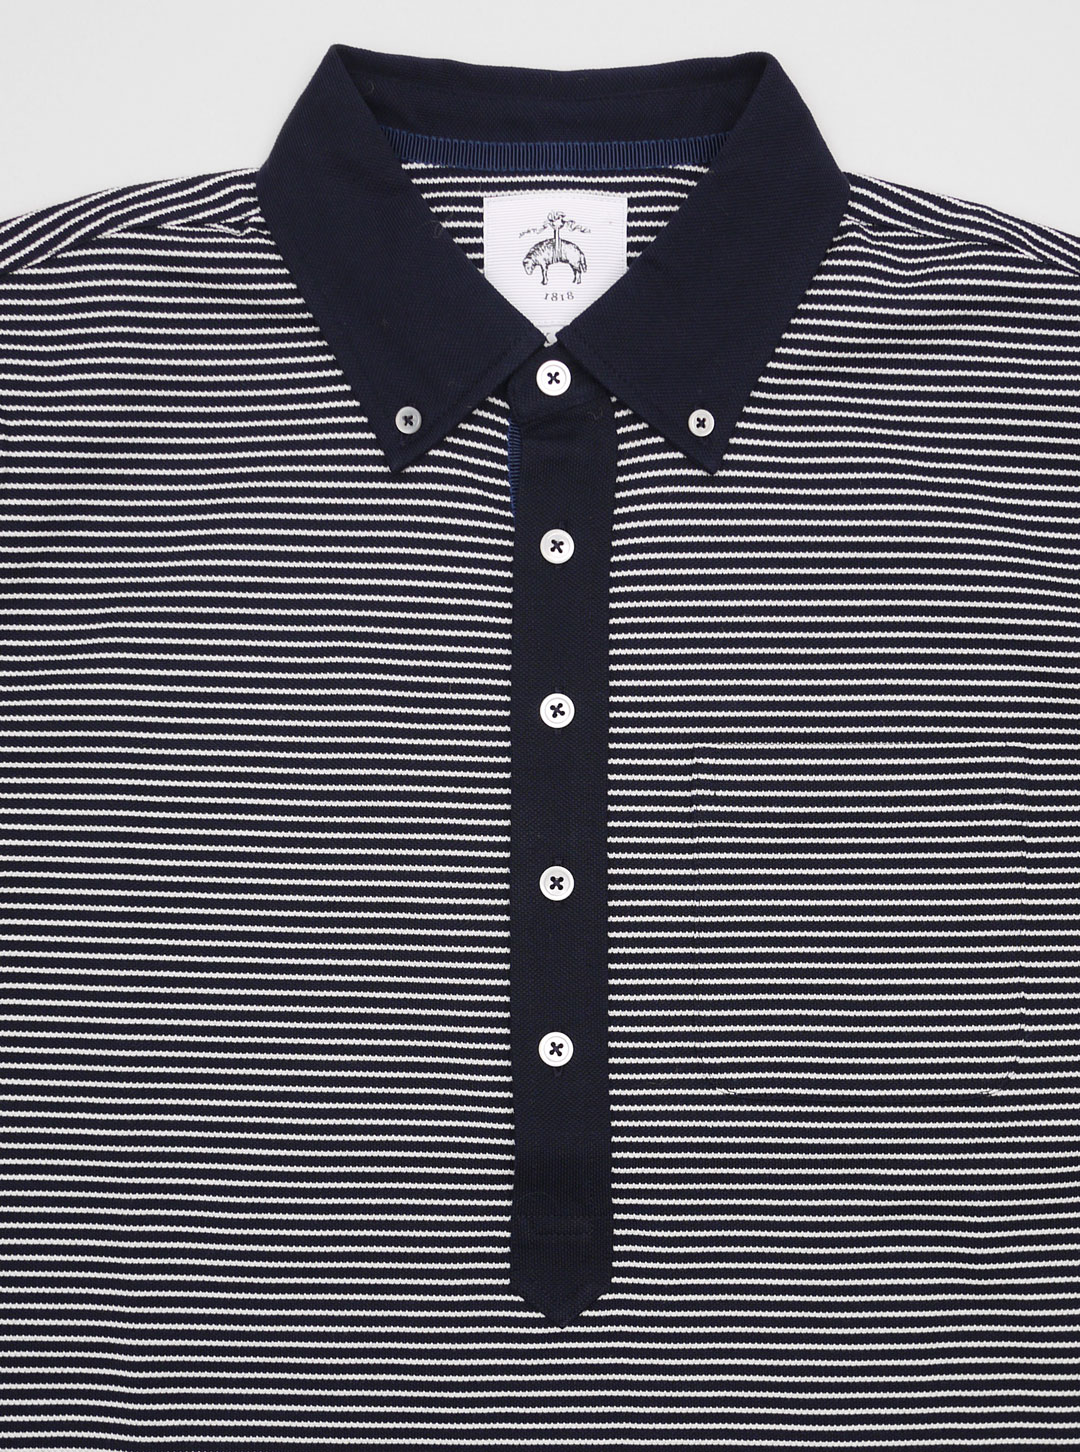 Best selling luxurious polo shirt brands for All polo shirt brands